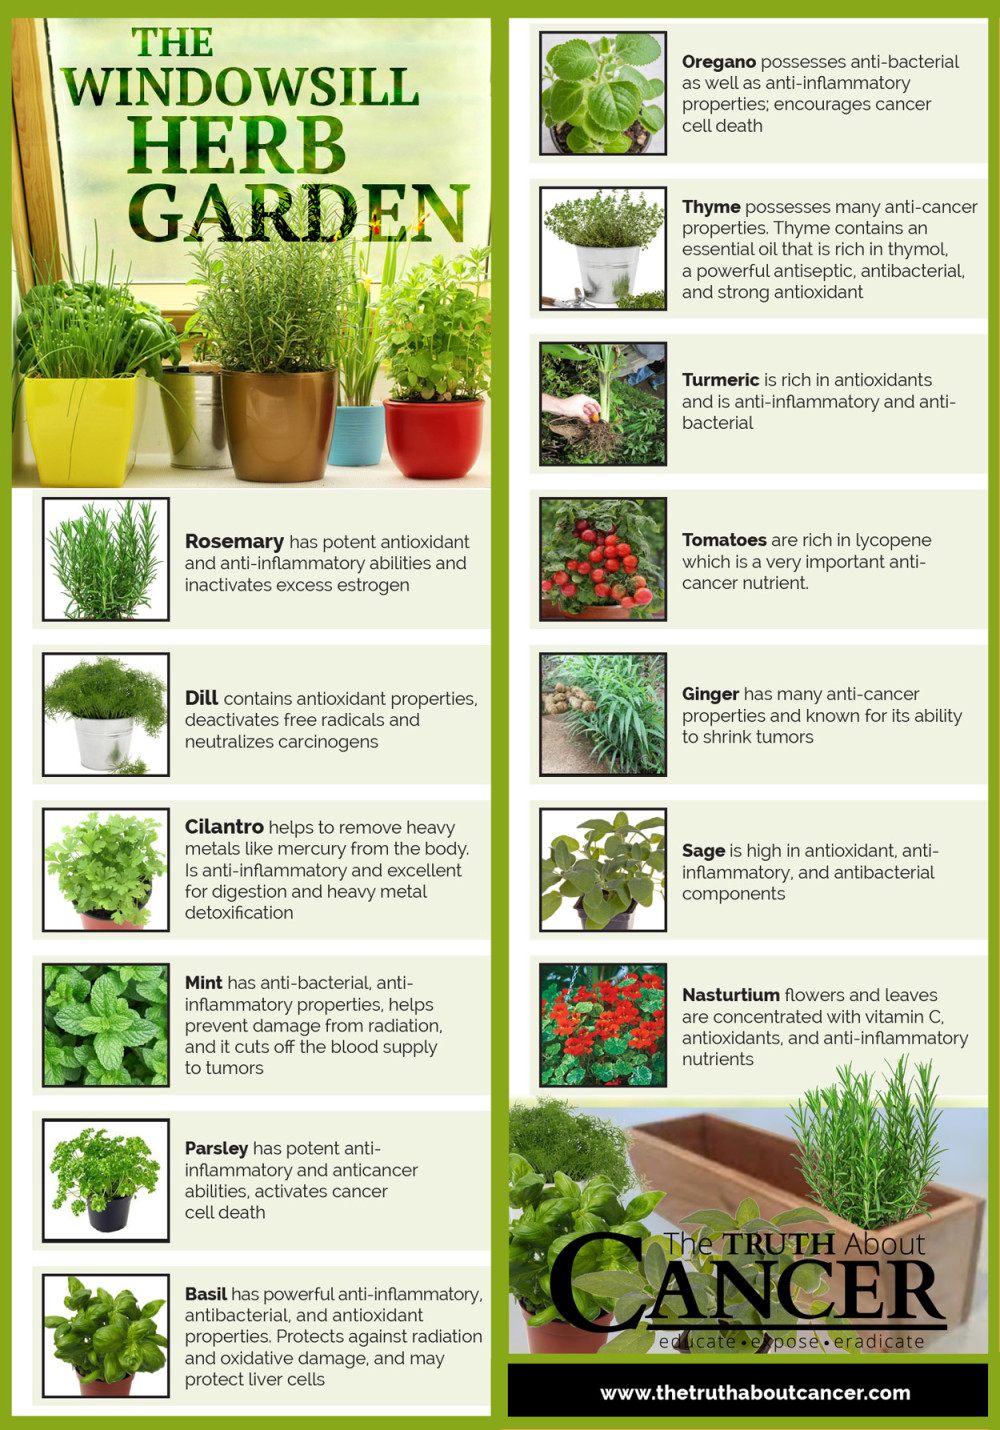 Windowshill Herb Garden Article